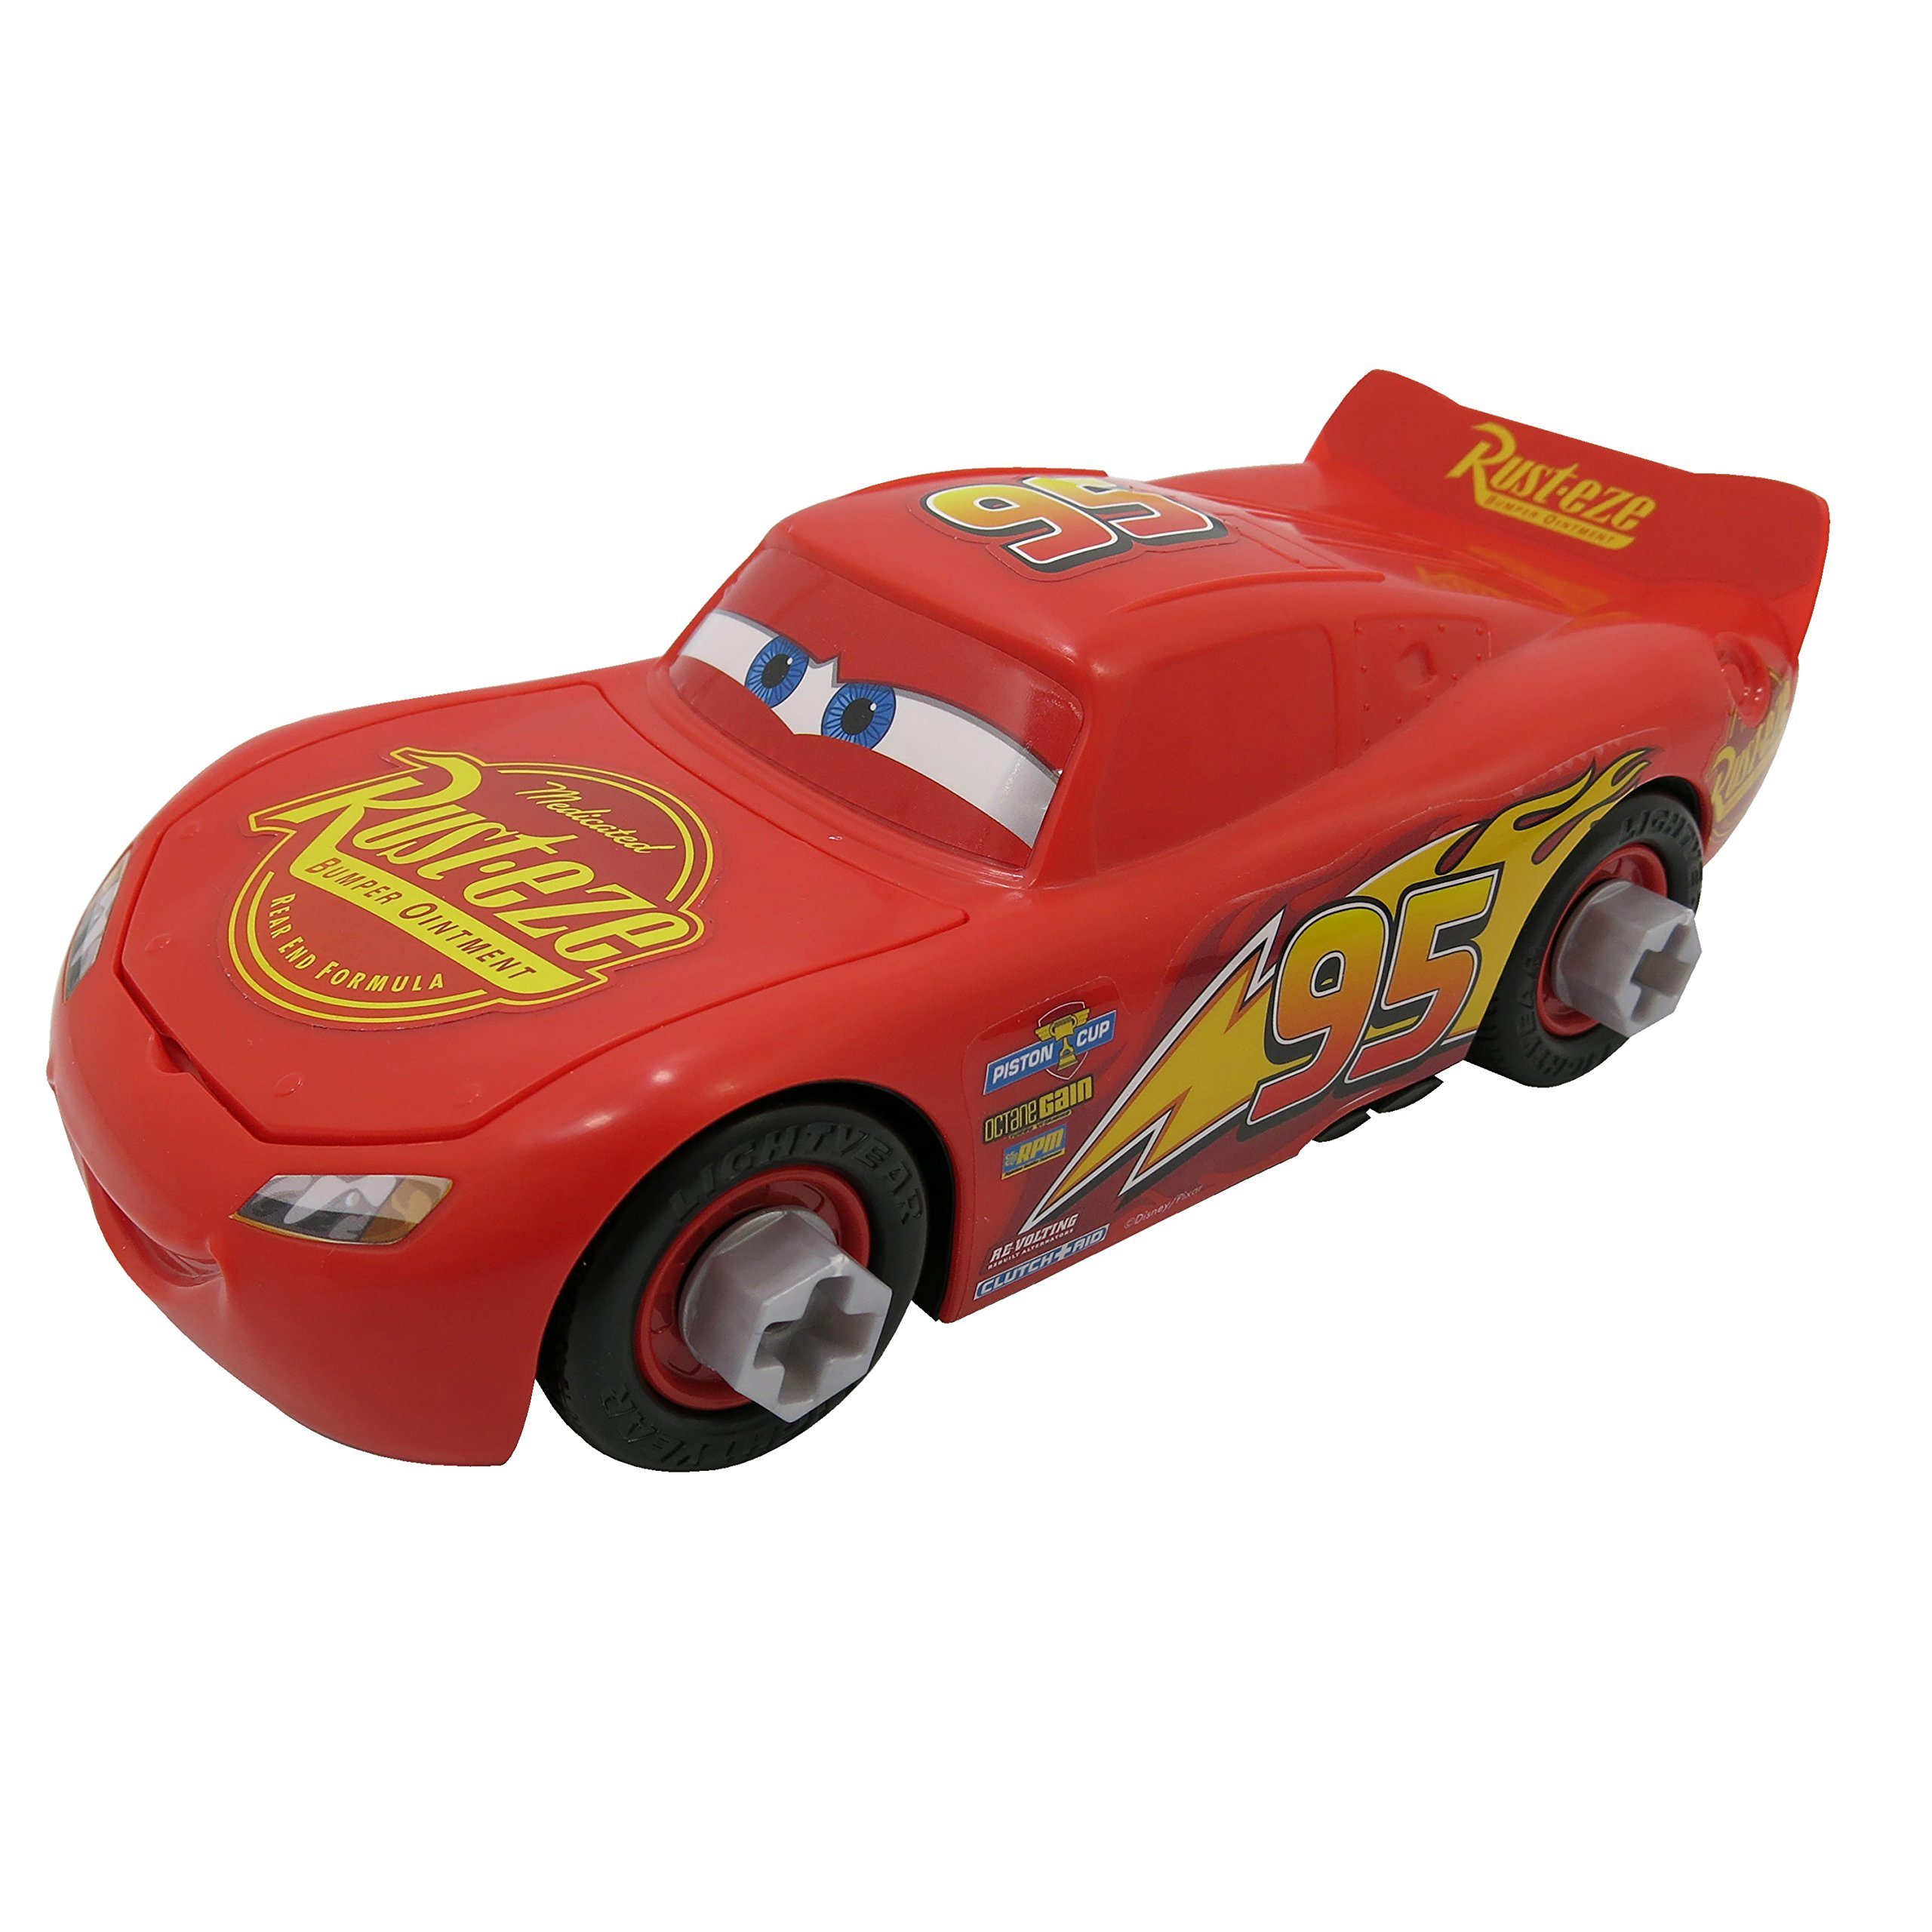 Cars 3 Macks Mobile Tool Center by Cars 3 (Image #5)